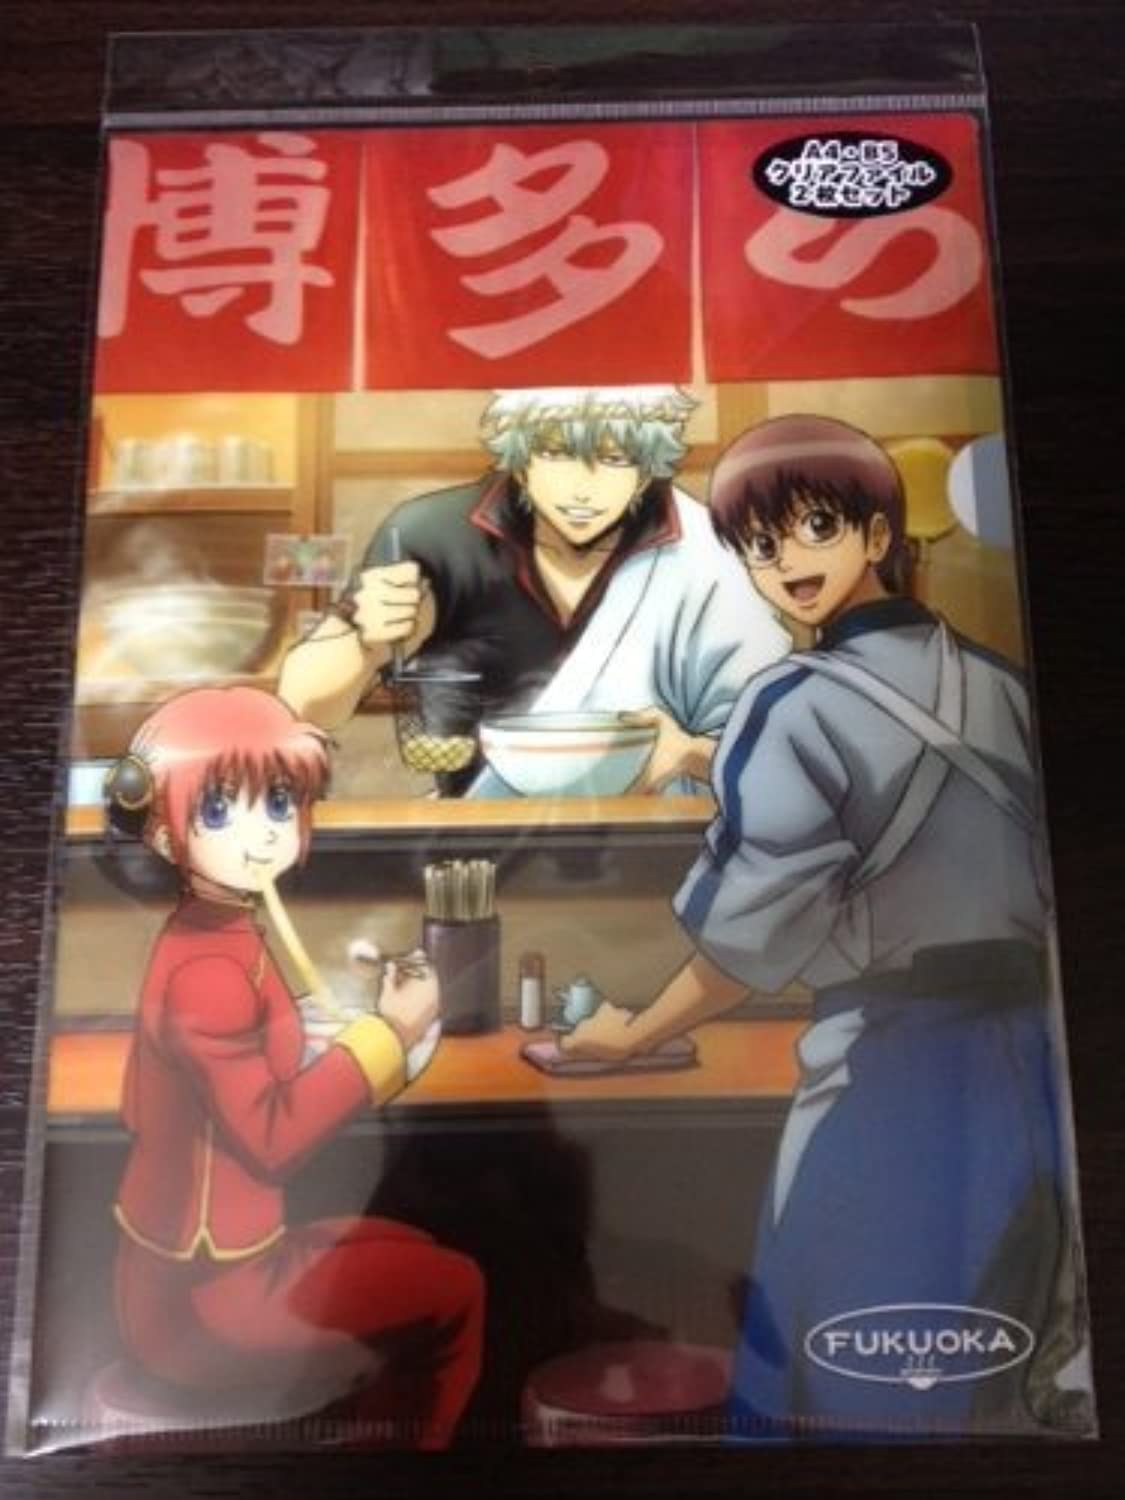 Fukuoka [limited] Gintama Clear File 2 pieces set A4 B5 (Japan import   The package and the manual are written in Japanese)